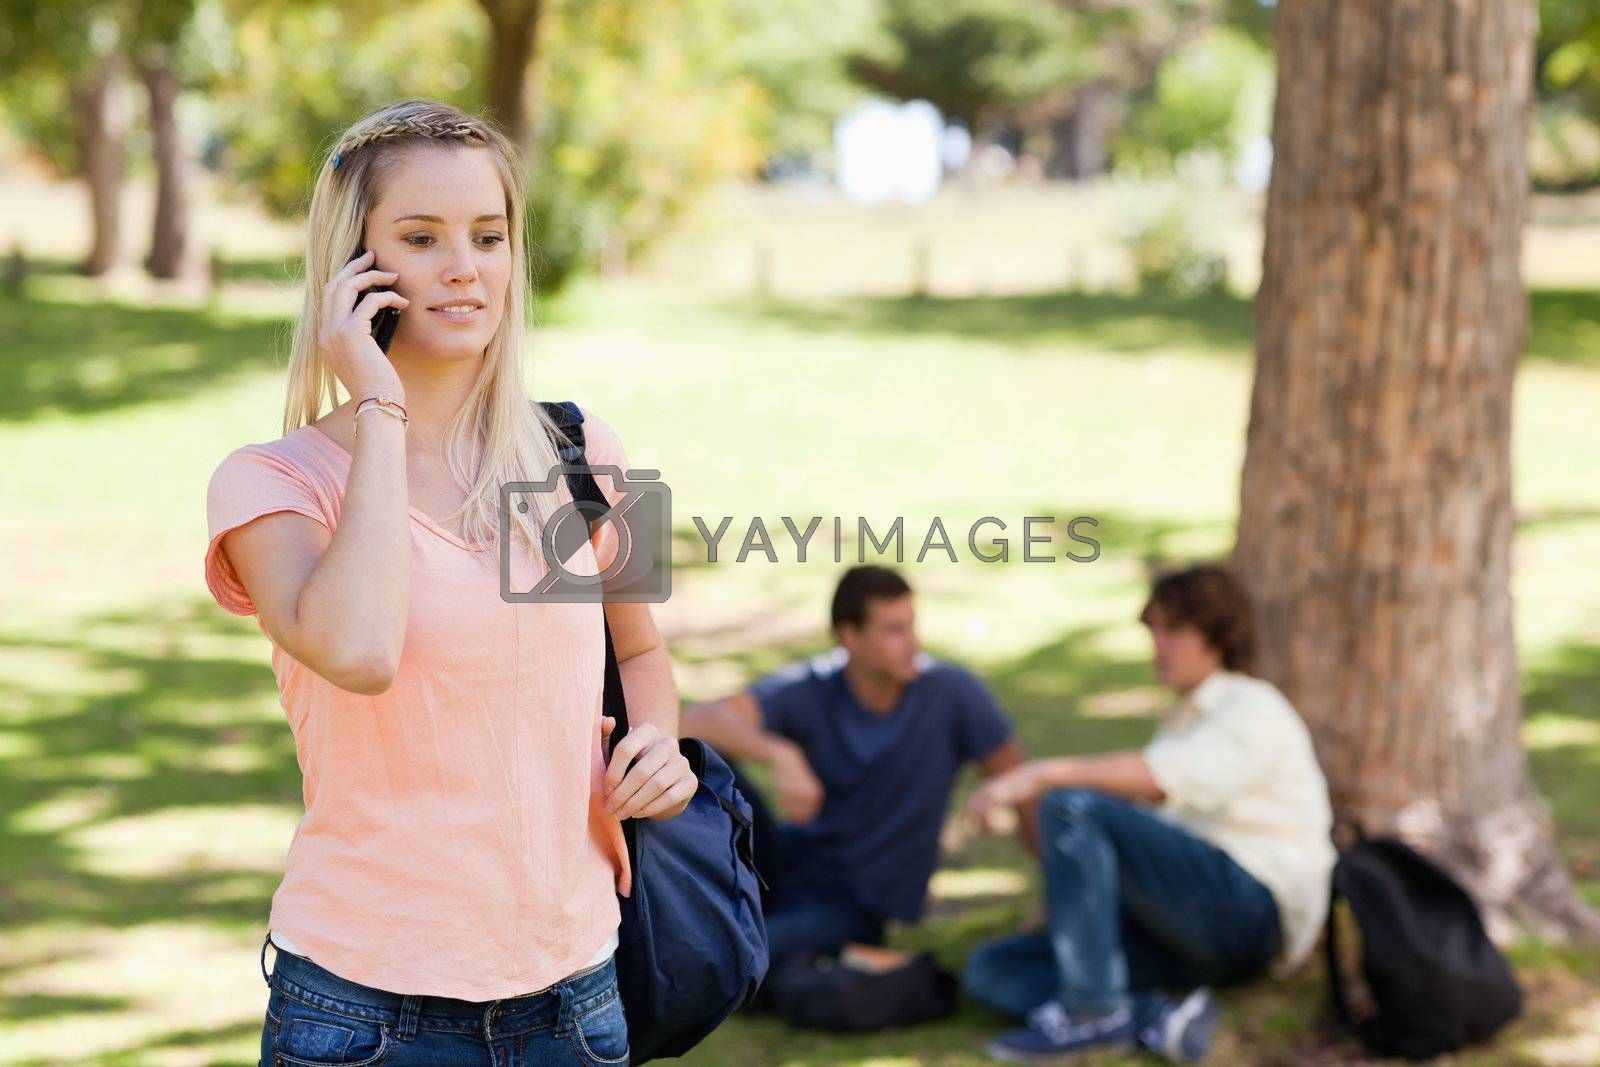 Girl on the phone in a park with friends in background